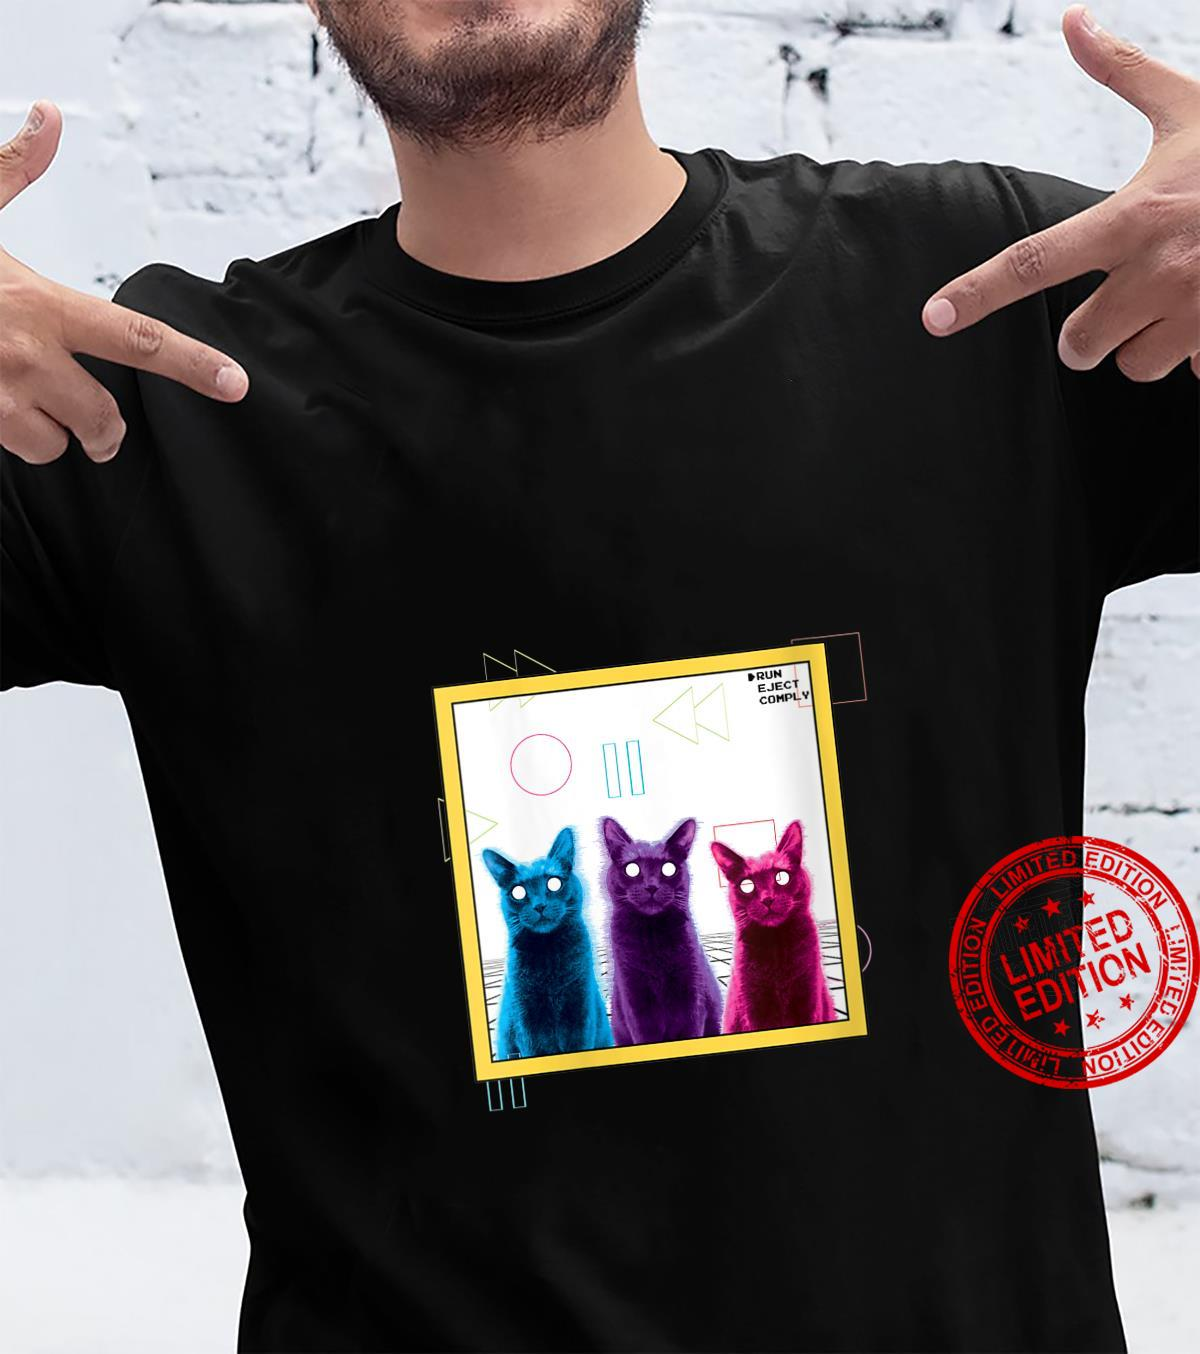 Womens Vaporwave Aesthetic Glitch Art Cats Techo Goth Synth Music Shirt